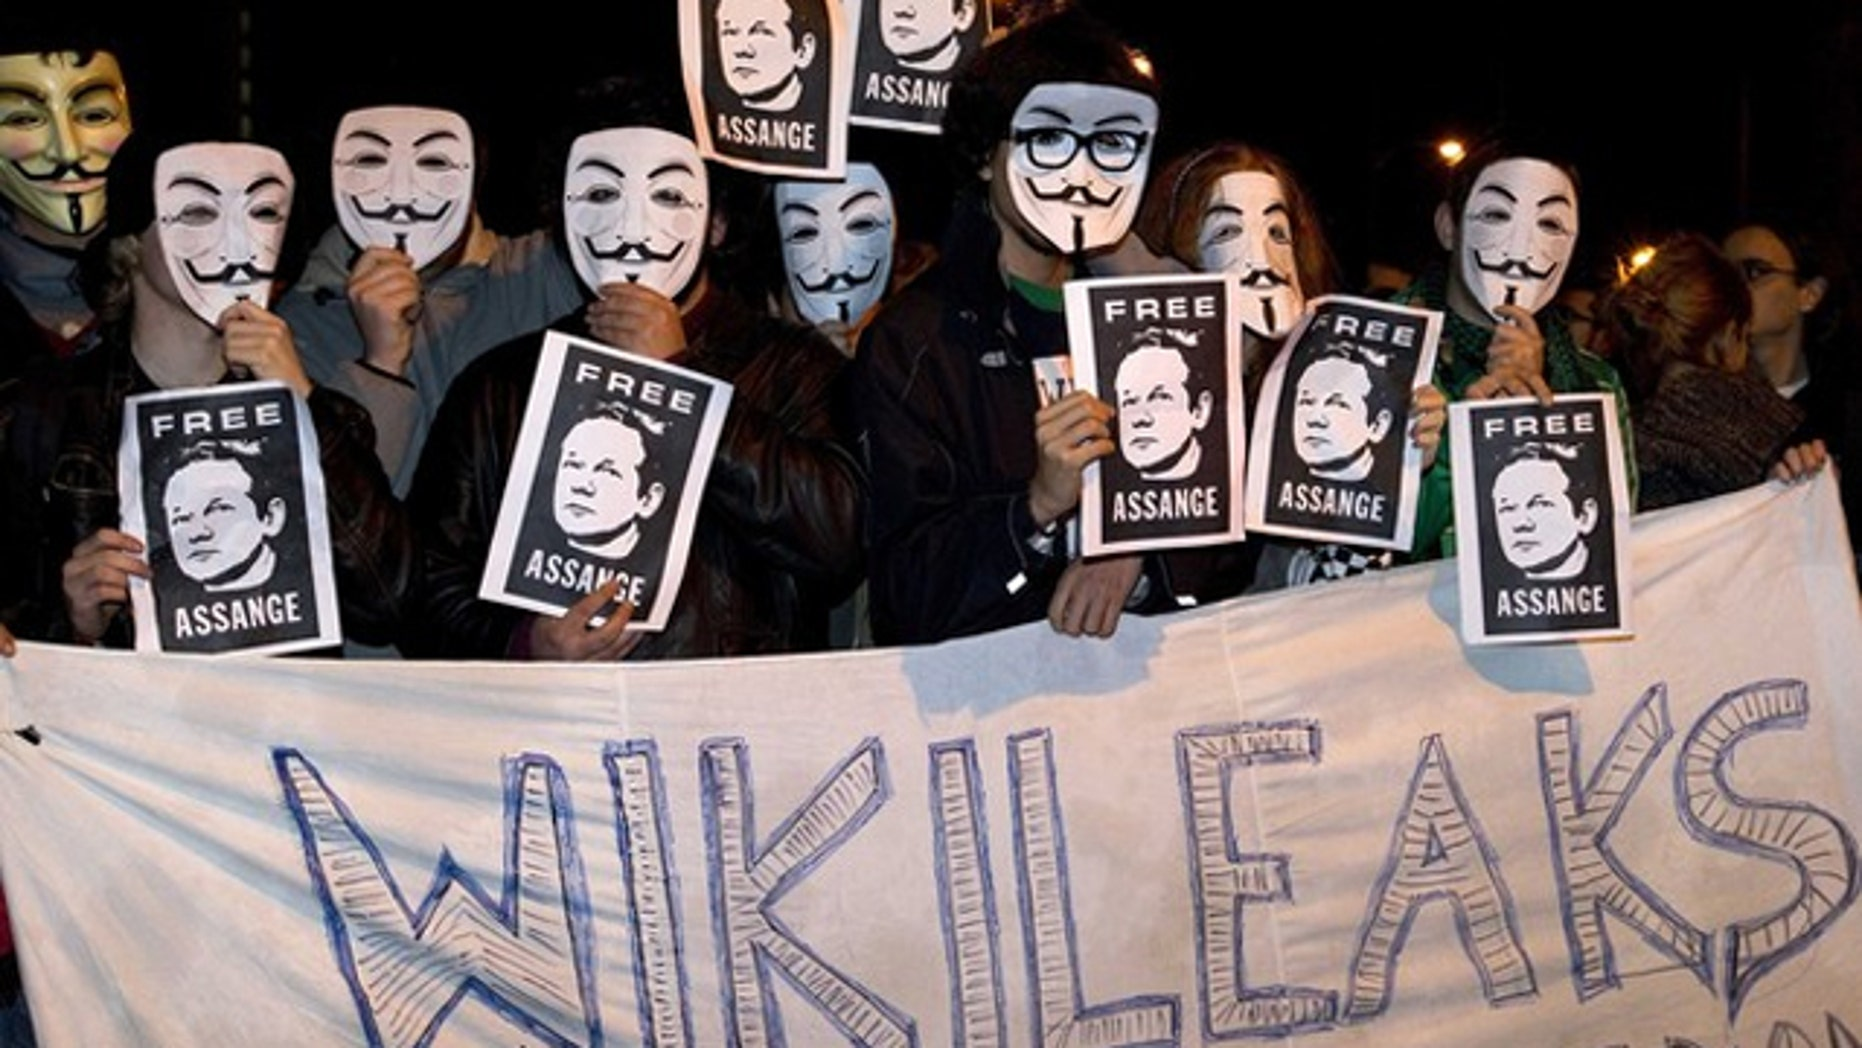 """The """"Anonymous"""" group went from being outspoken supporters of WikiLeaks and Bradley Manning to """"hacktivist"""" attacks against various corporate and government websites."""